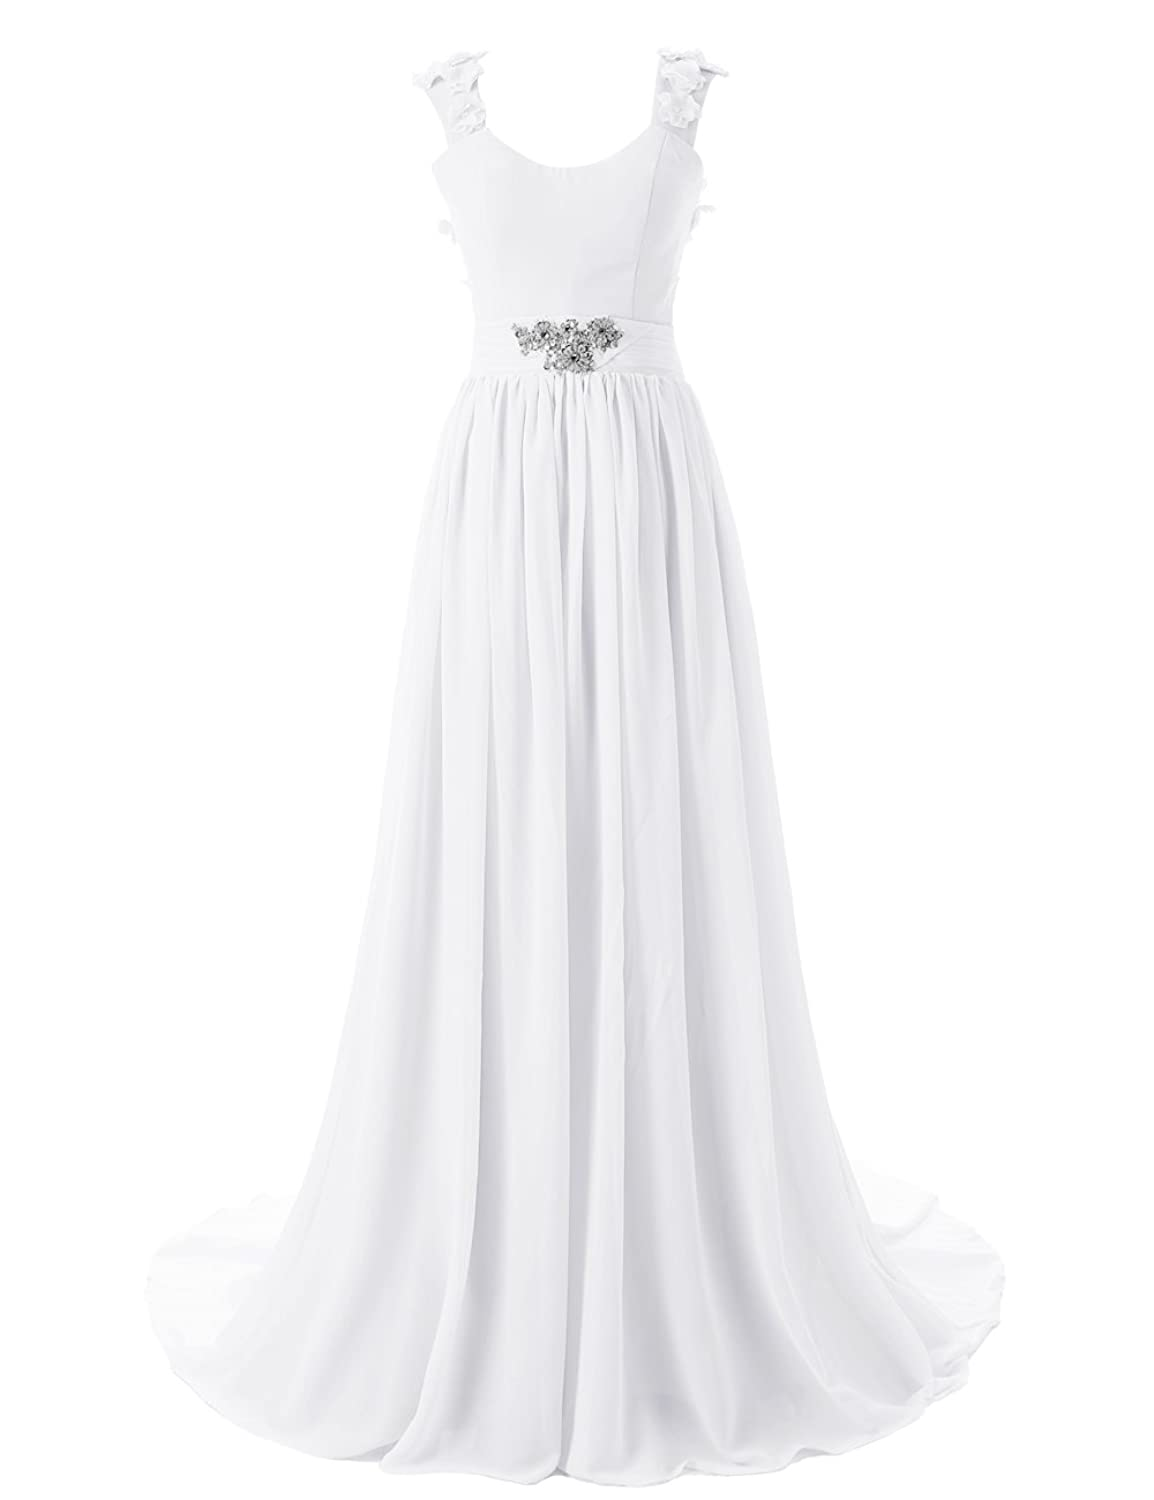 Dressystar Bodenlanges elegantes Ballkleid fashion Brautjungkleid Chiffon Elfenbein in Gr??e 50W